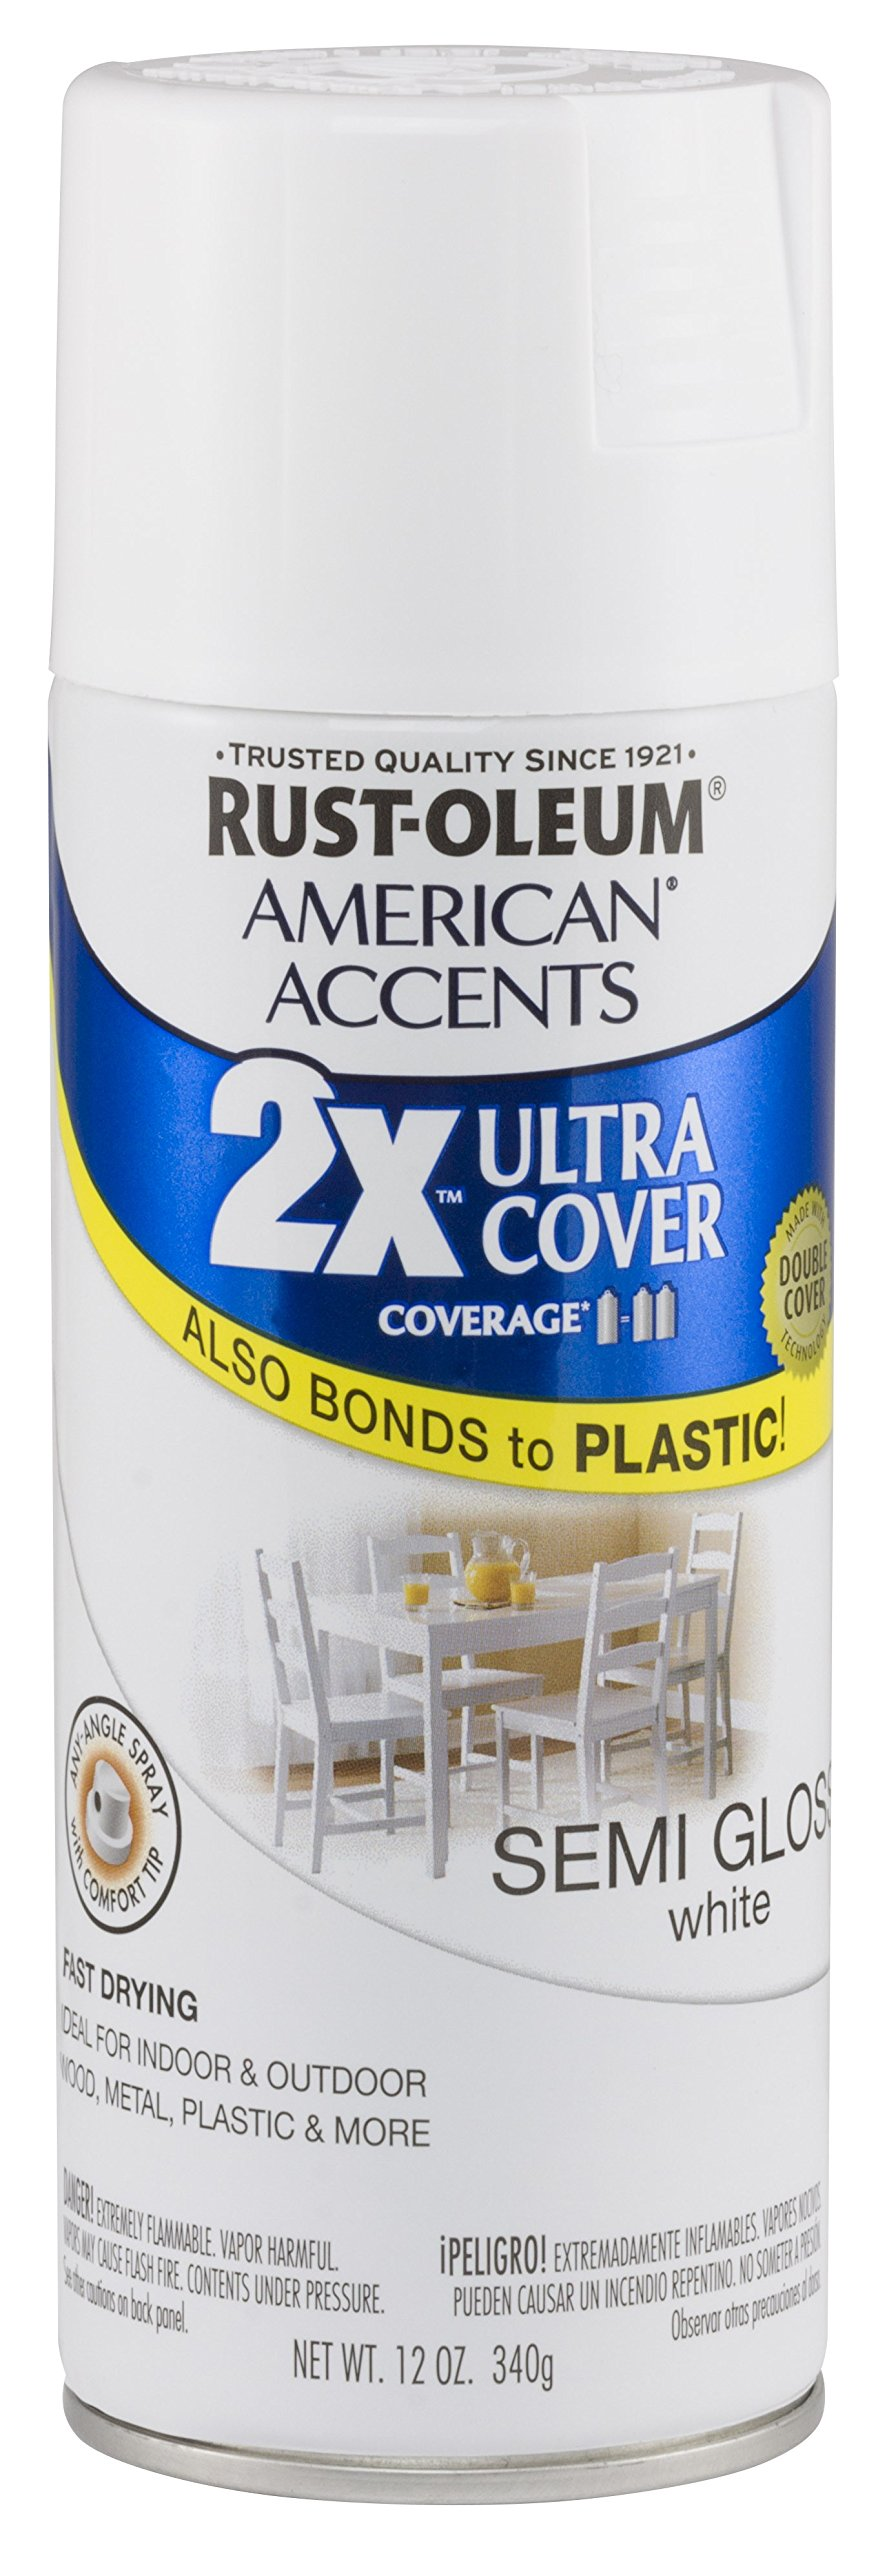 Rust Oleum 280722 American Accents Ultra Cover 2X Spray Paint, Semi-Gloss White, 12-Ounce